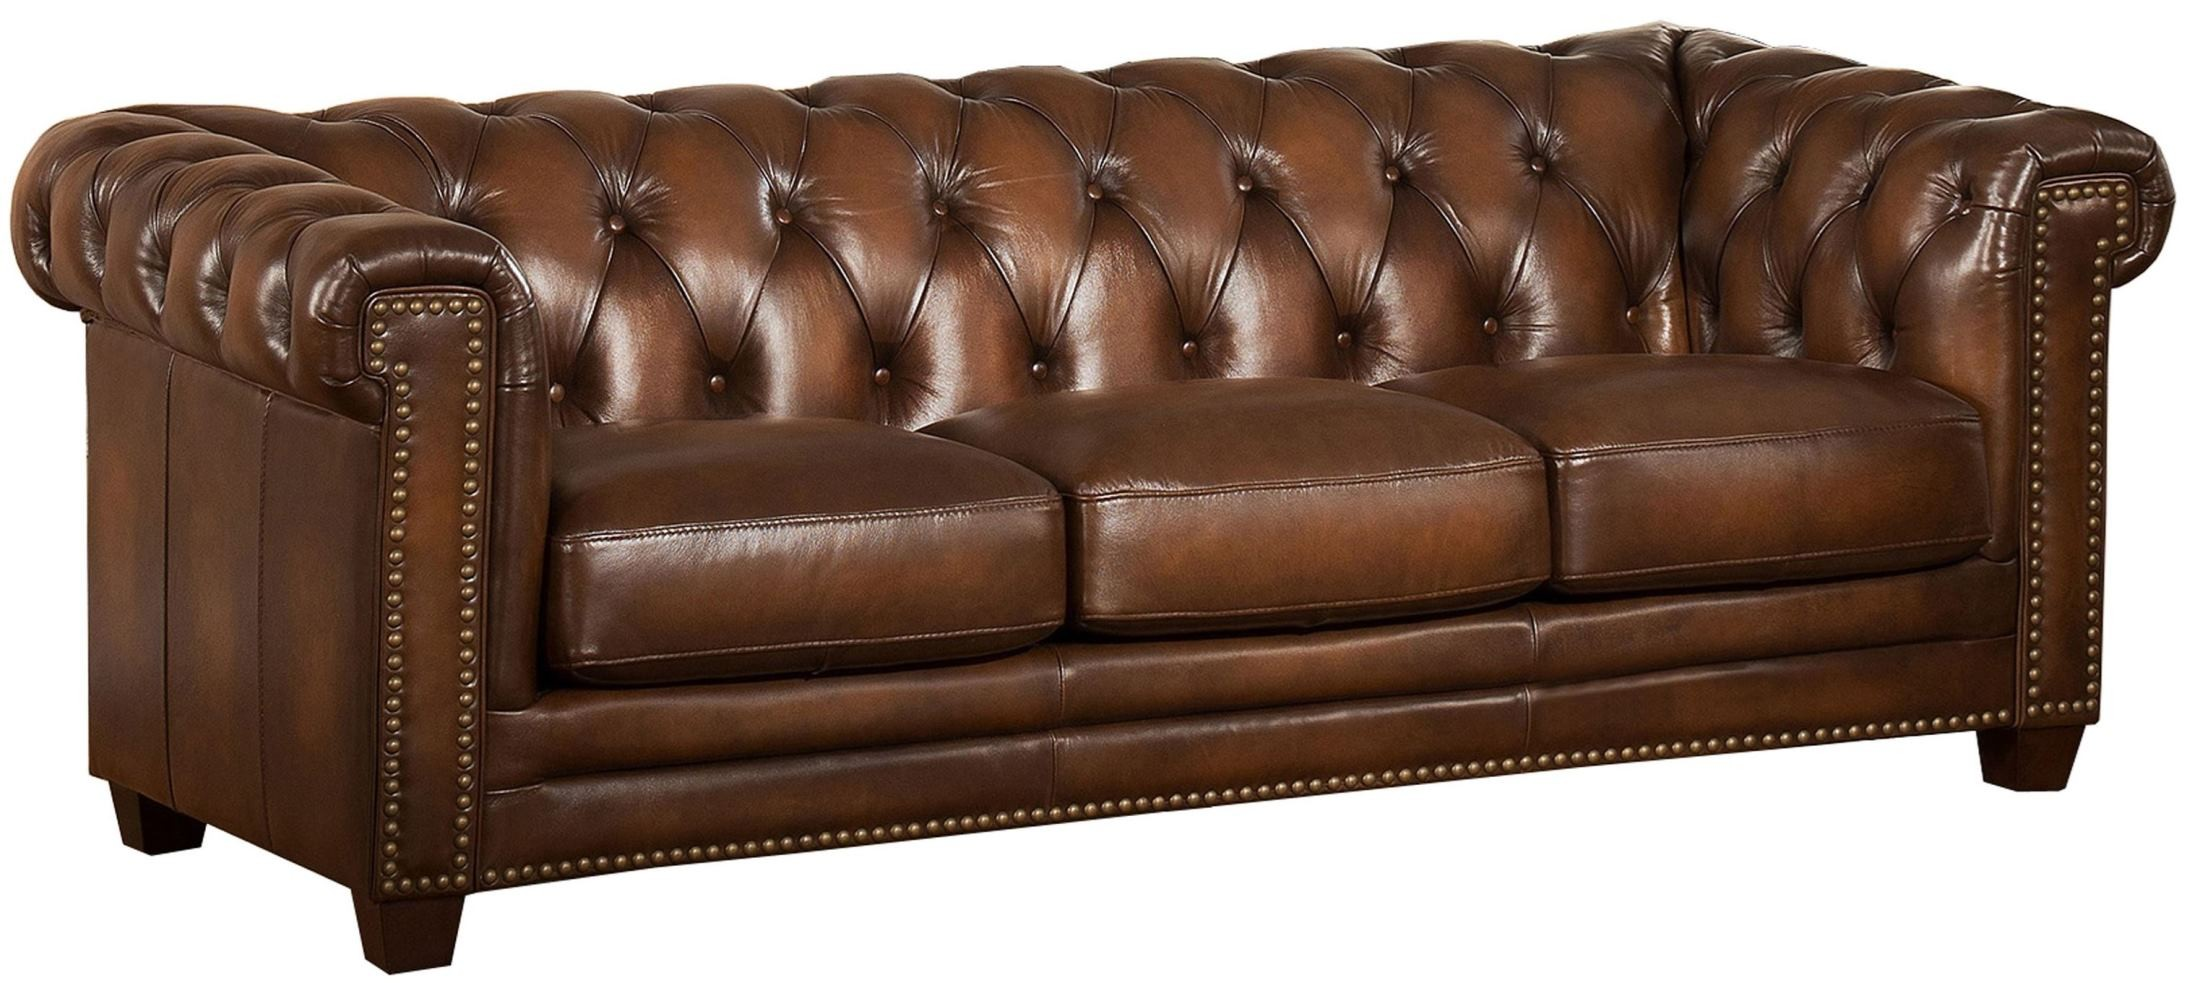 stanley sofa cost india queen sleeper air mattress park ii brown leather from amax